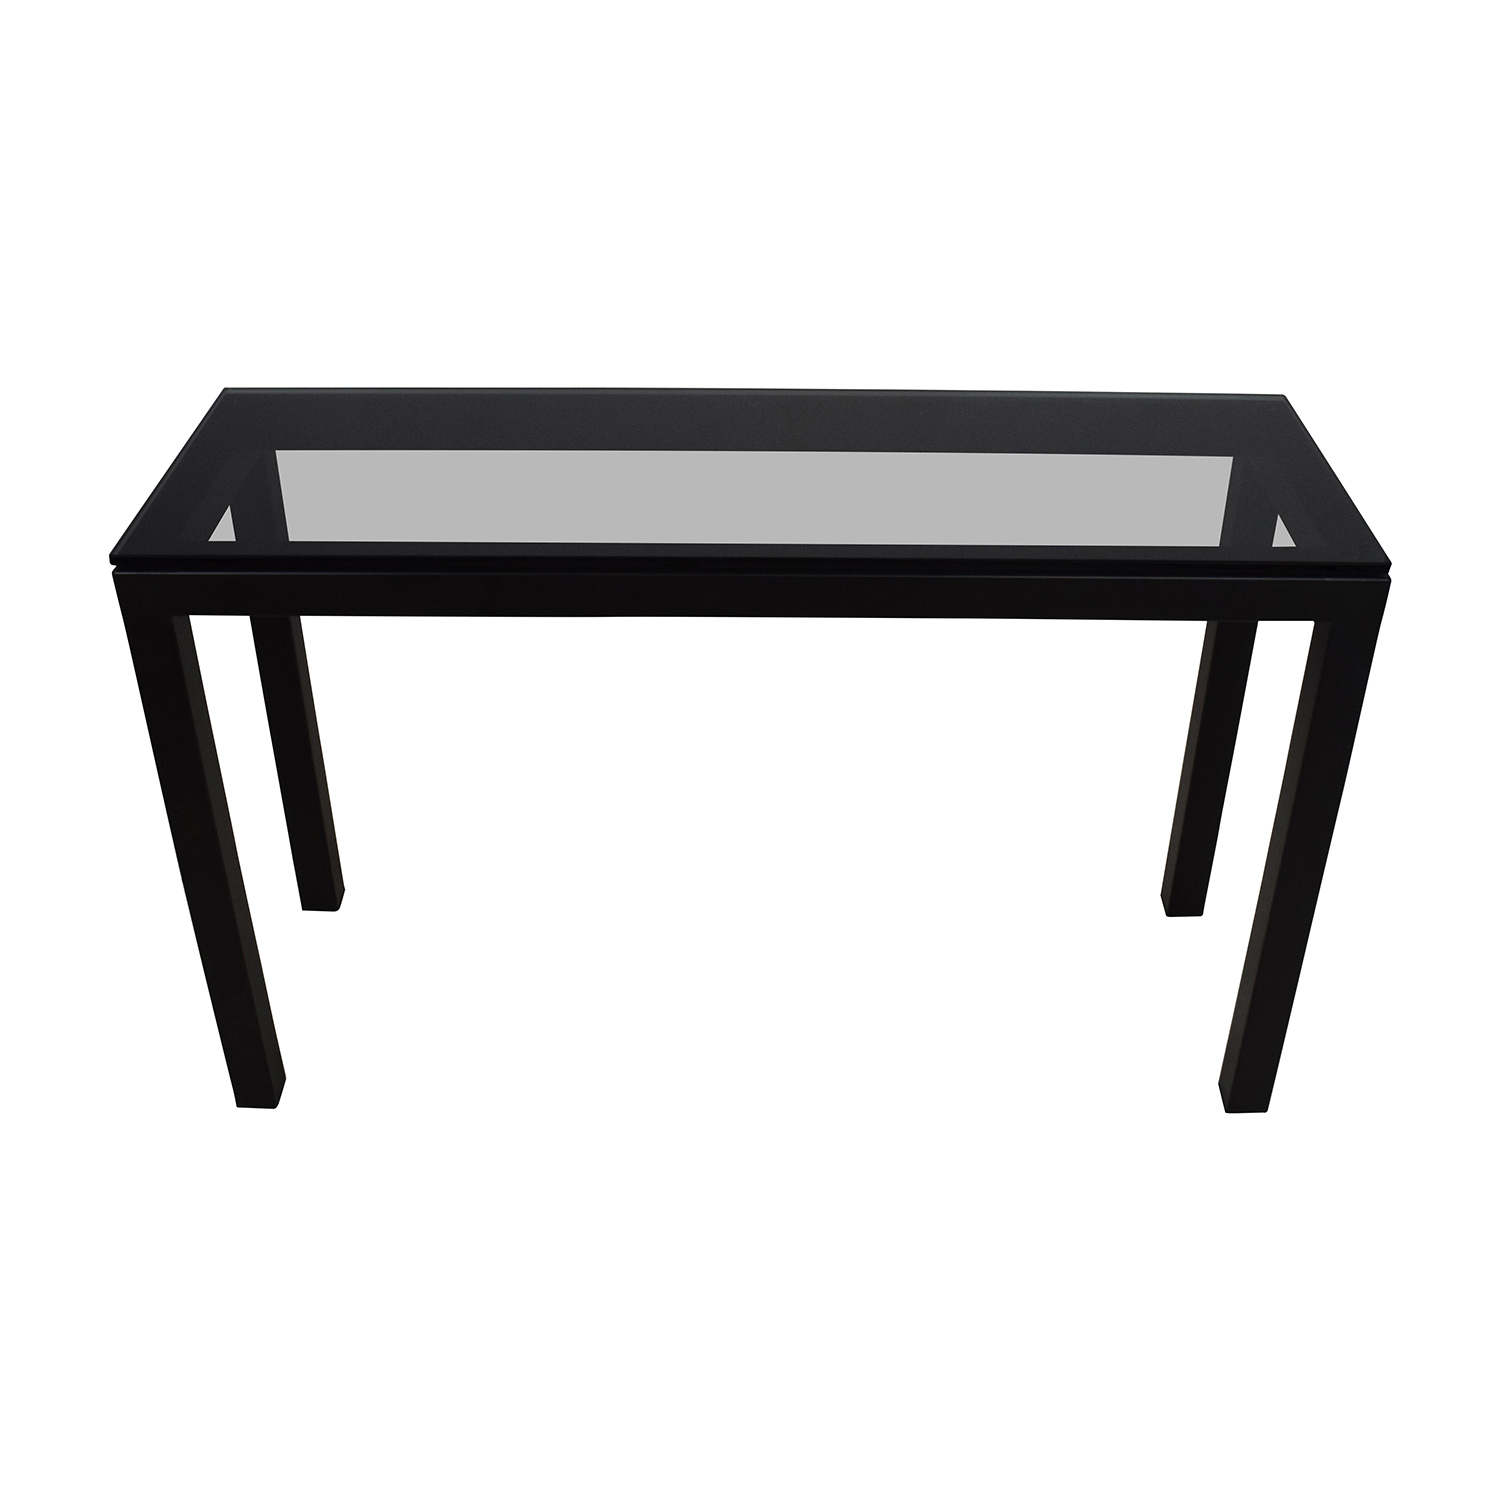 48% OFF Crate & Barrel Crate & Barrel Drum Metal Table Tables